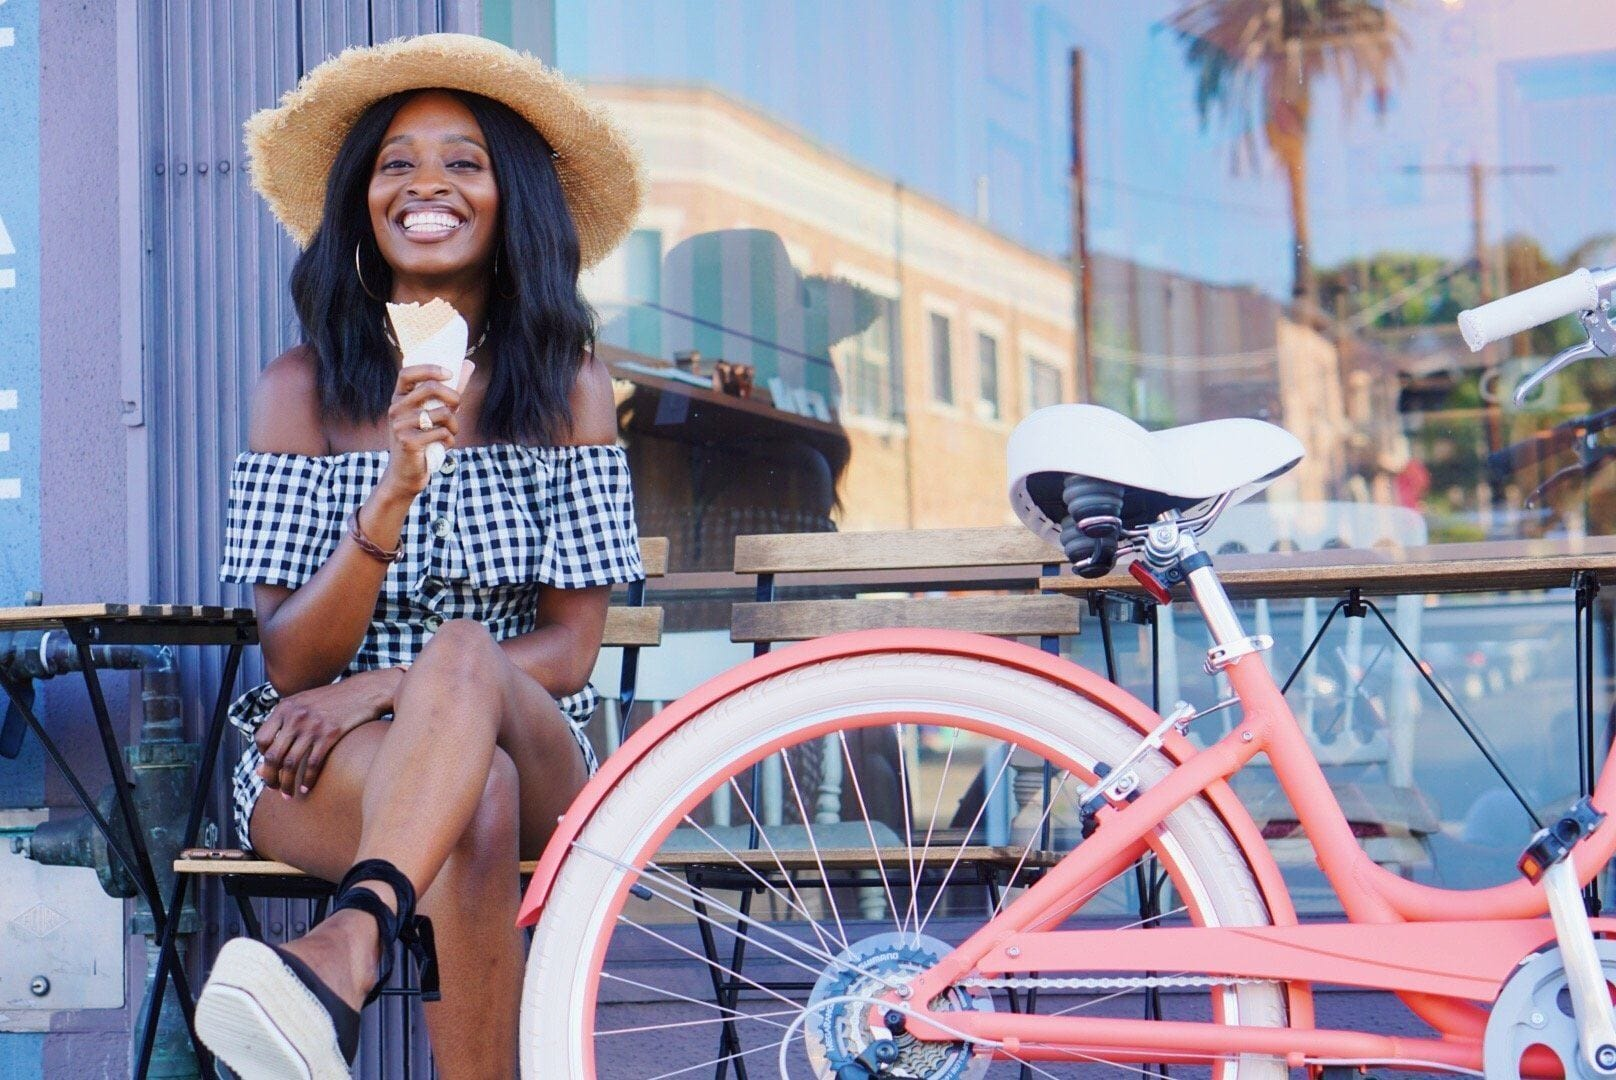 Bike City Tours: LA With Yvette Corinne